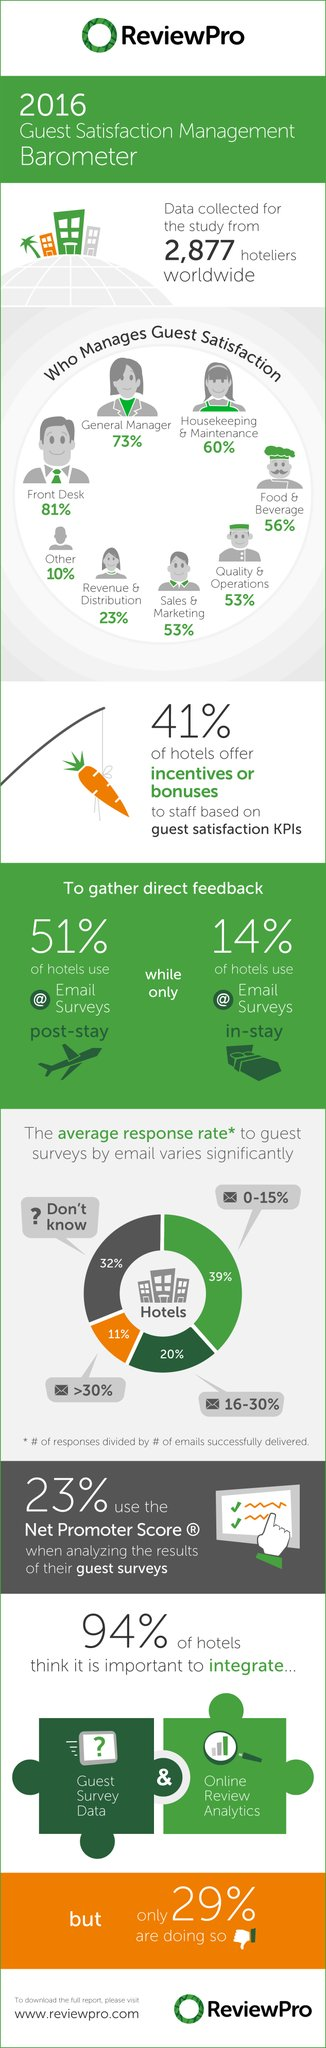 "ReviewPro på Twitter: ""#INFOGRAPHIC: How are hoteliers around the world managing guest feedback? #HotelMarketing https://t.co/87PXG9Wp4o"""